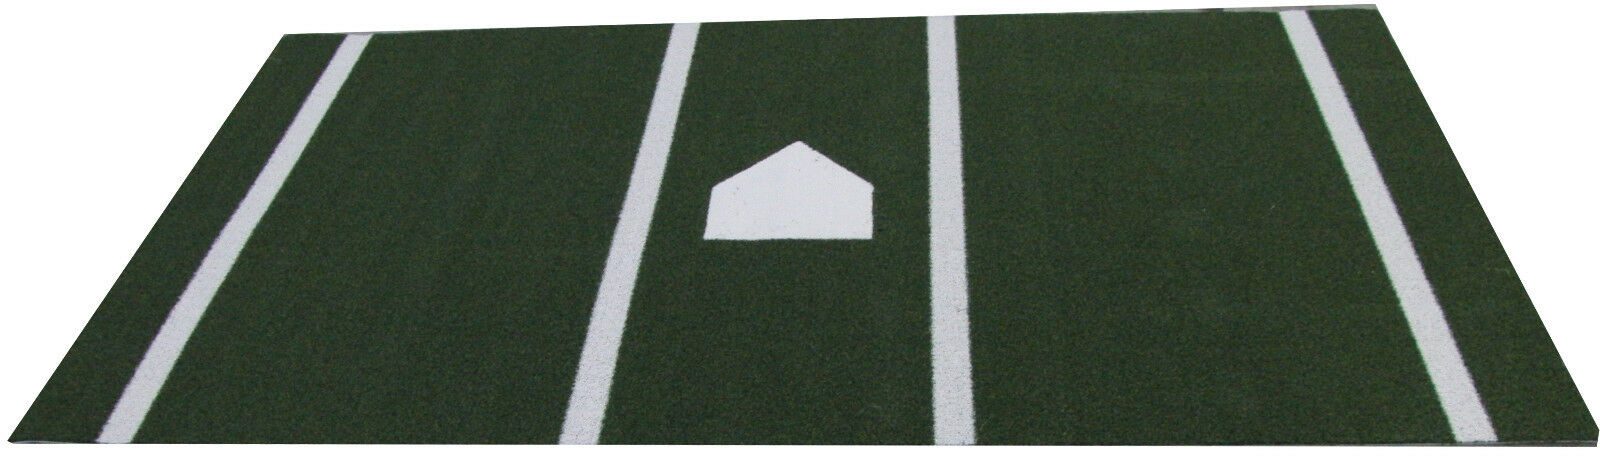 5 ft x 12 Ft SyntheticTurf Baseball Softball Batting Practice Hitting Cage Mat